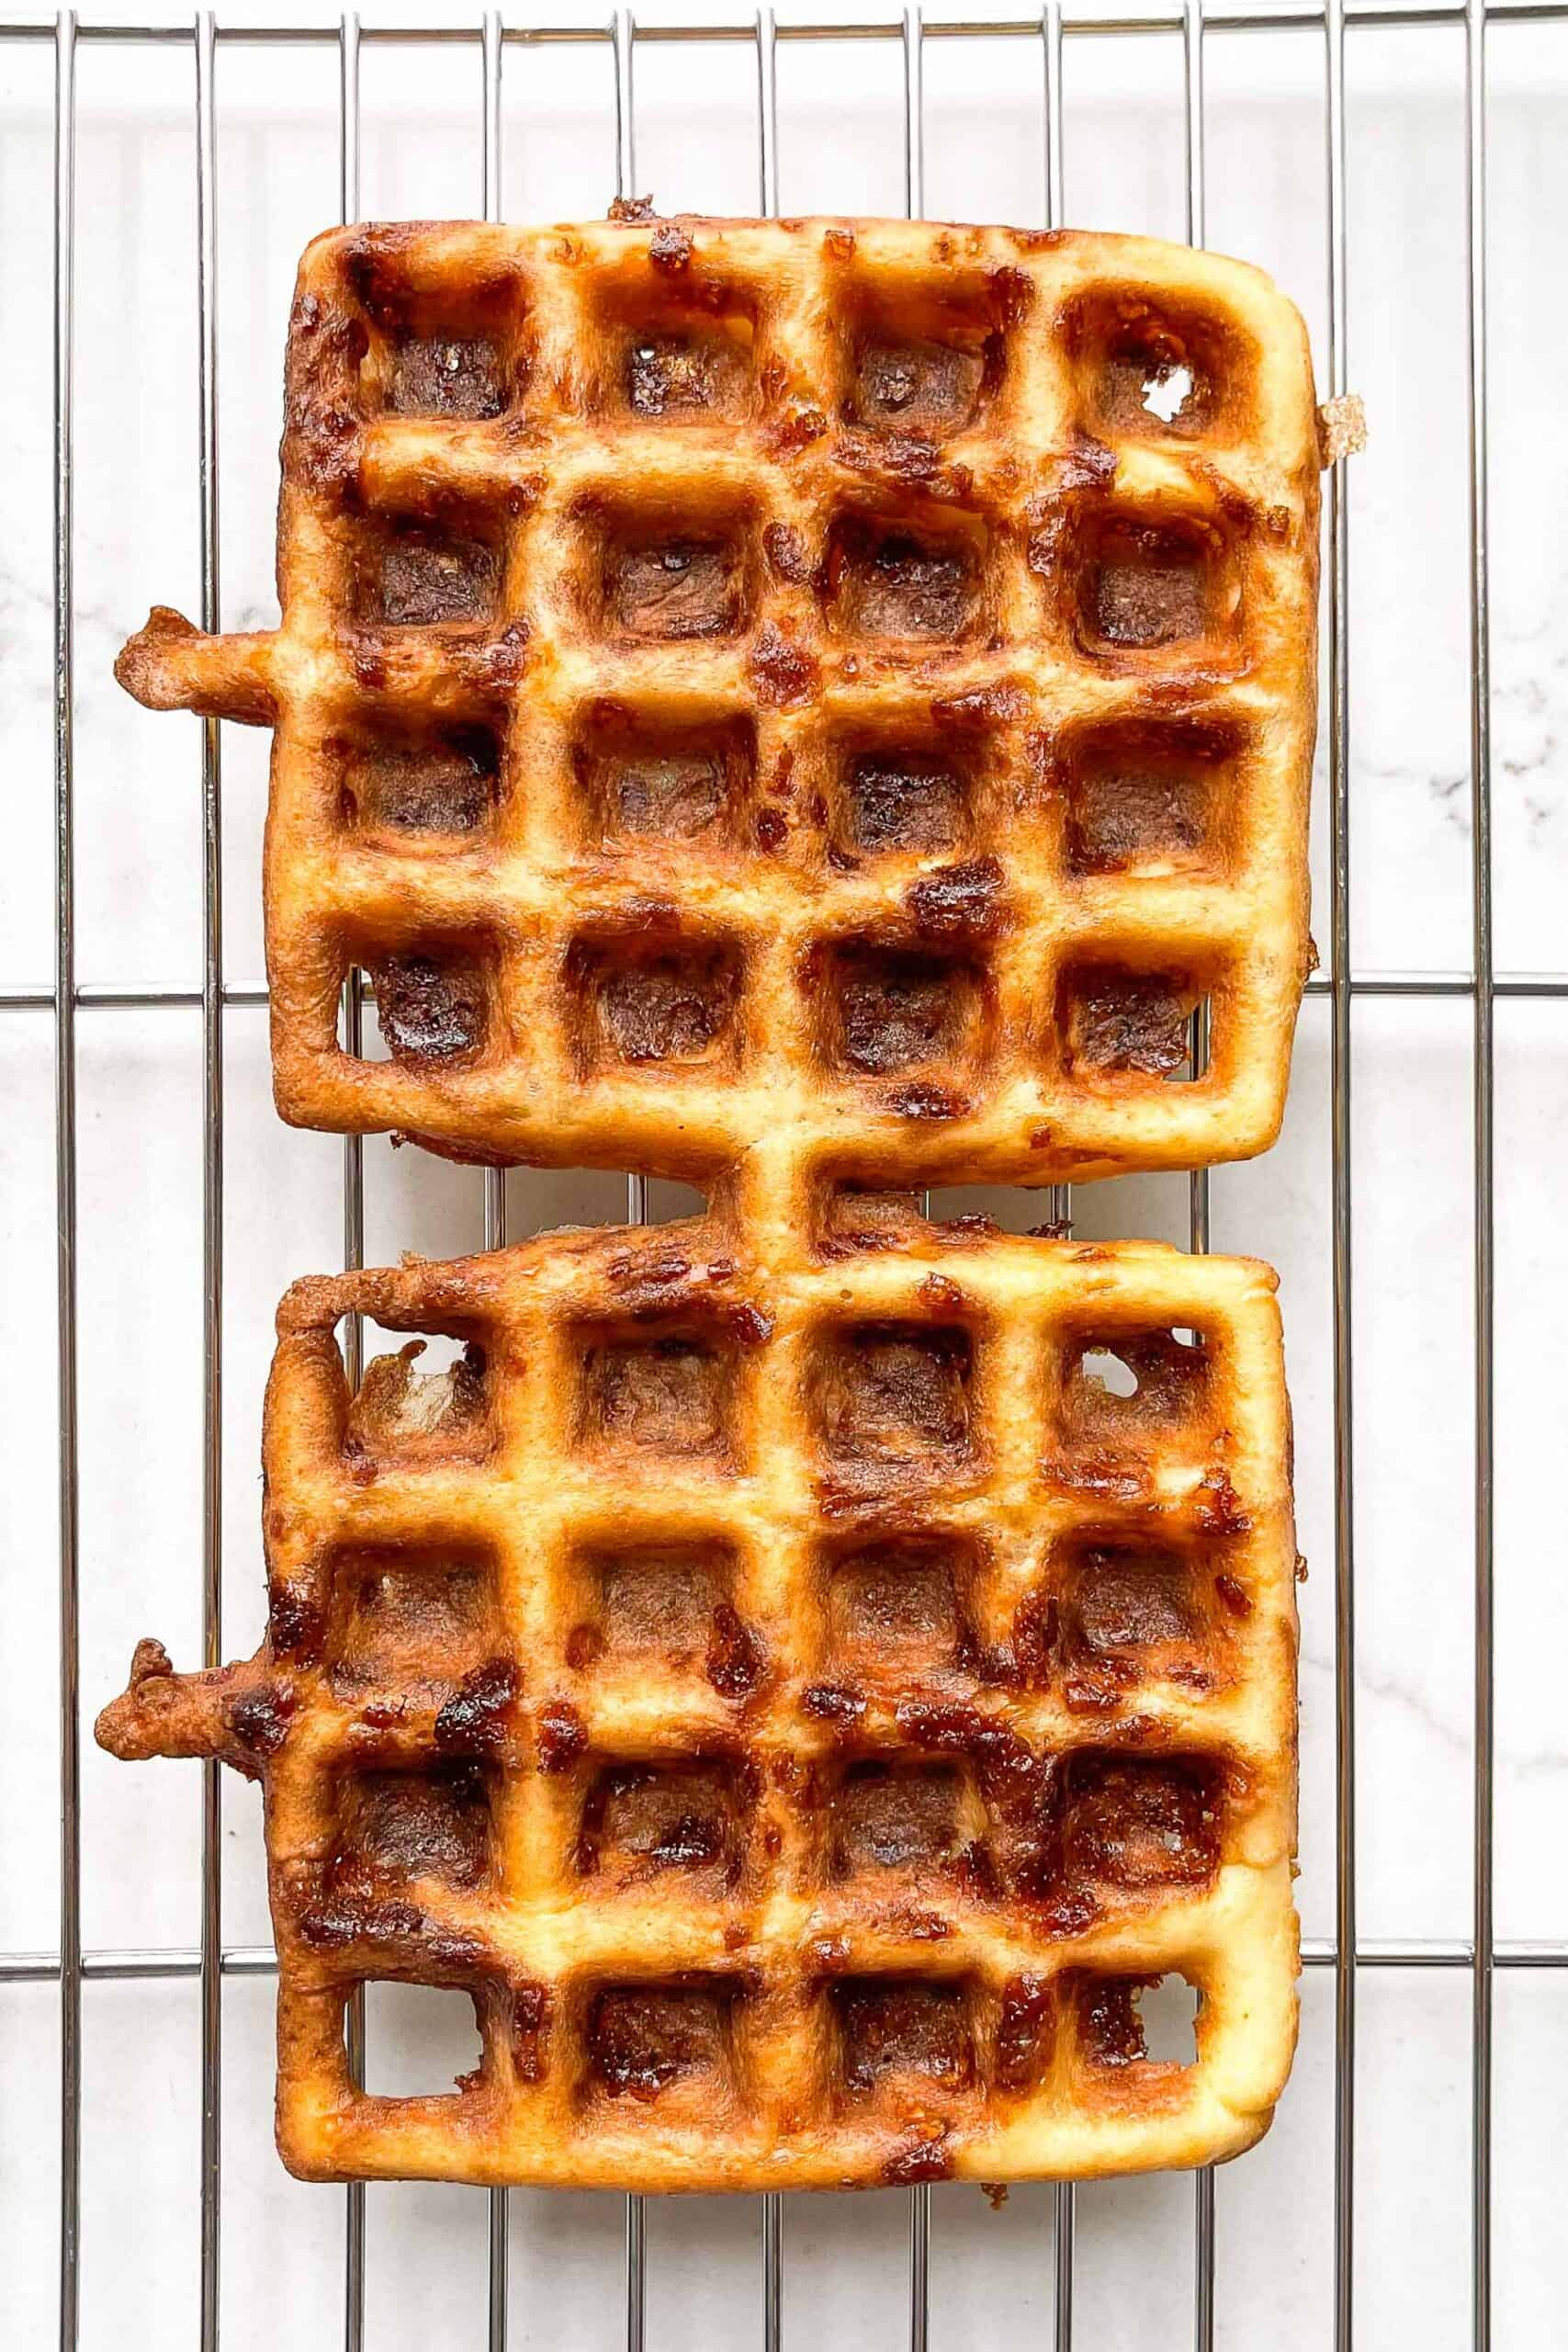 KETO CHAFFLE ON A COOLING RACK